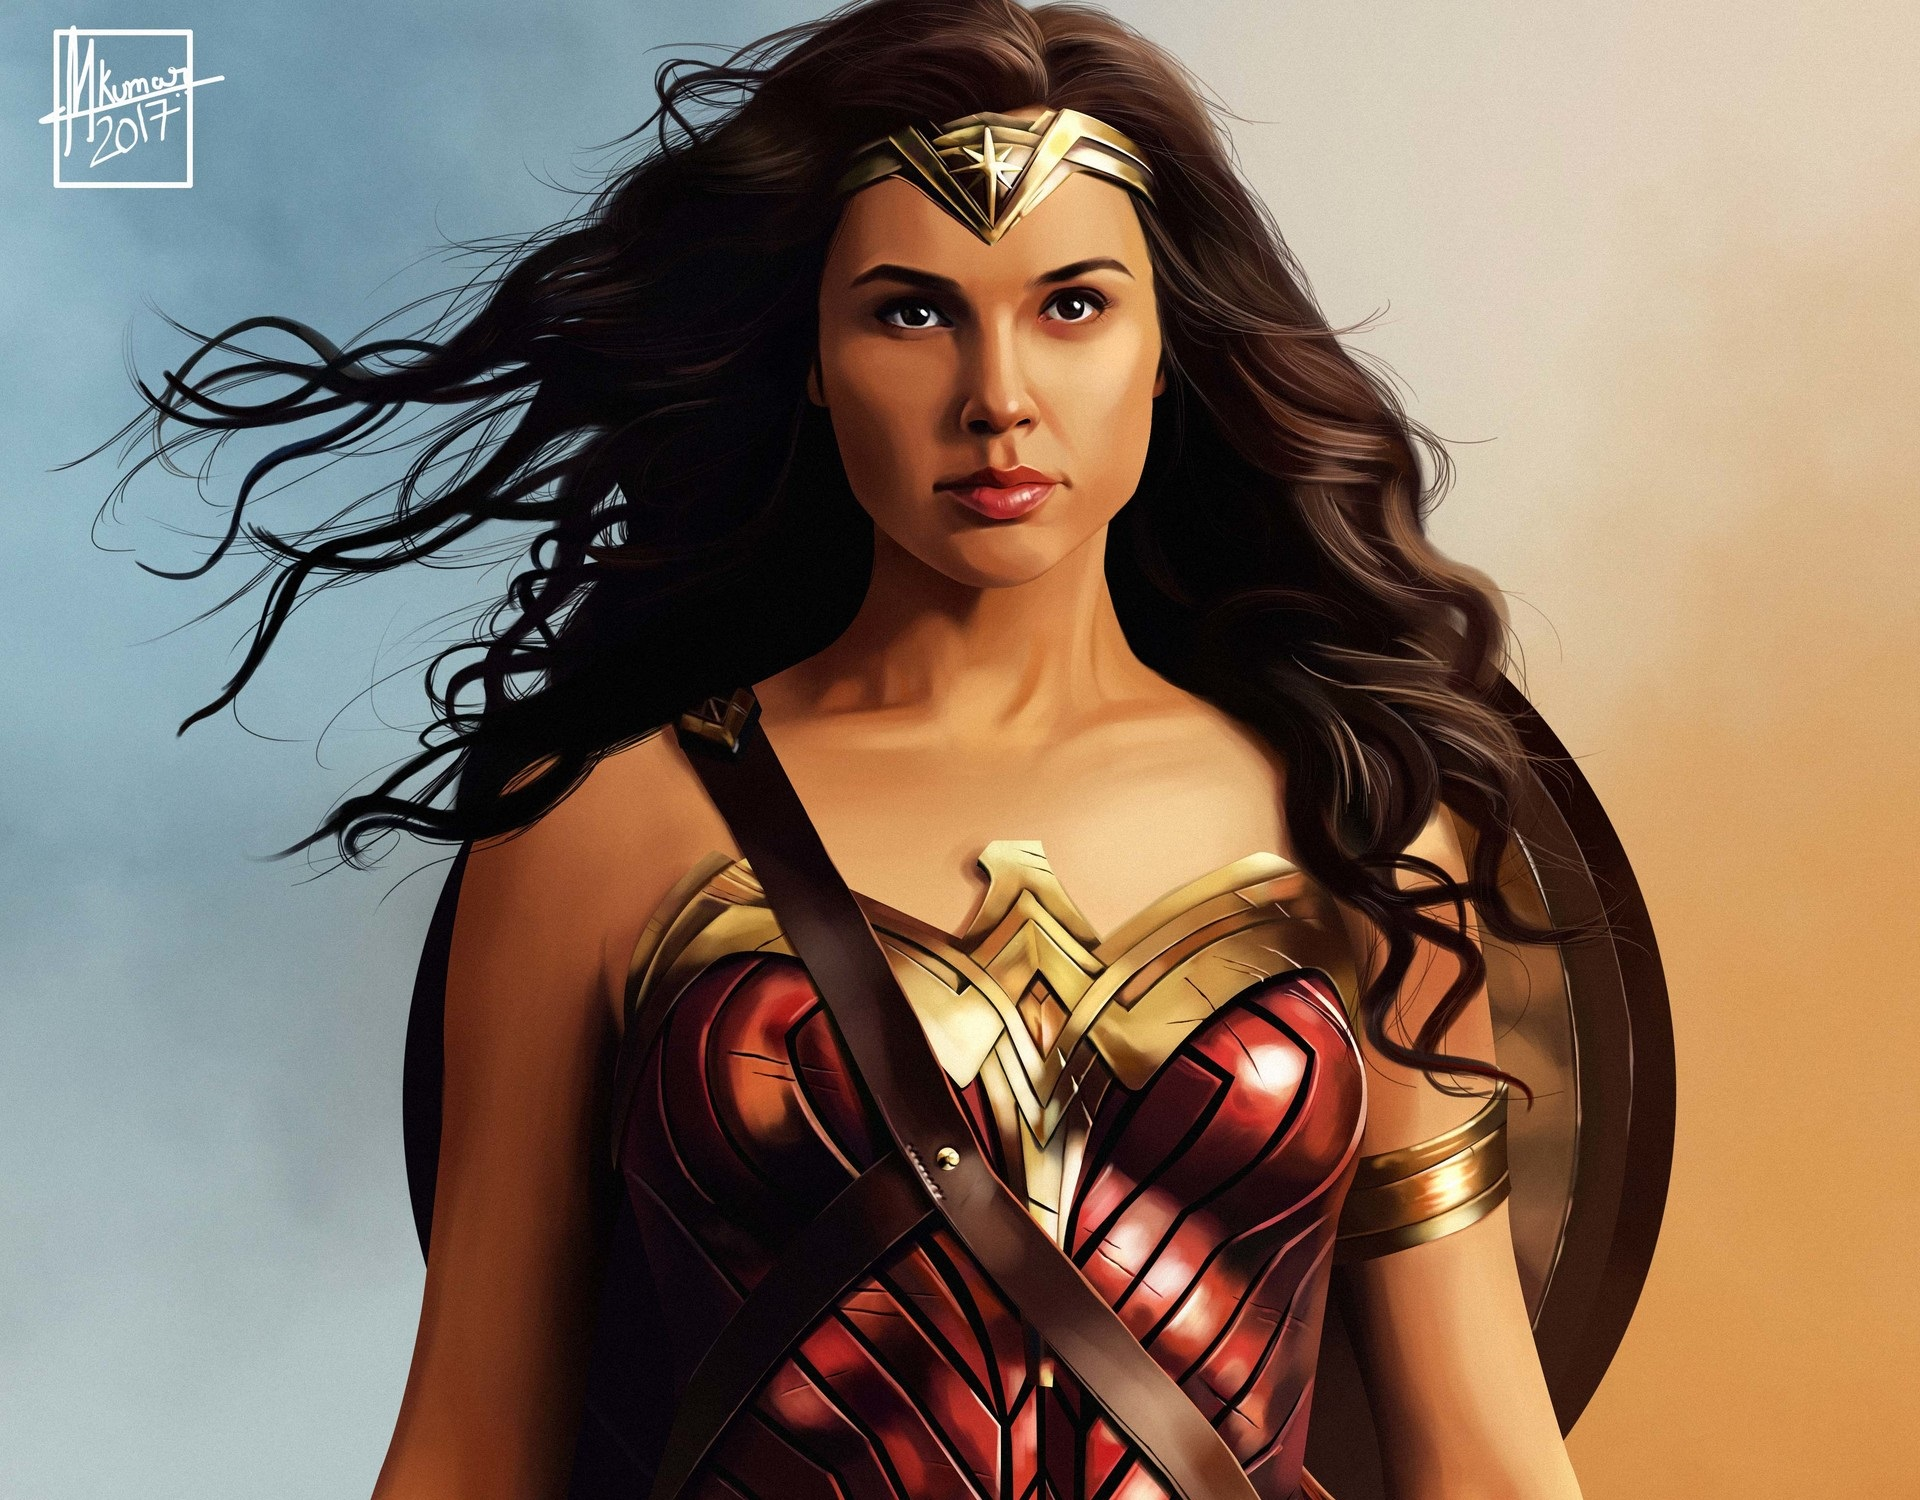 Wonderwoman Live Wallpaper: Wonder Woman HD Wallpapers, Pictures, Images